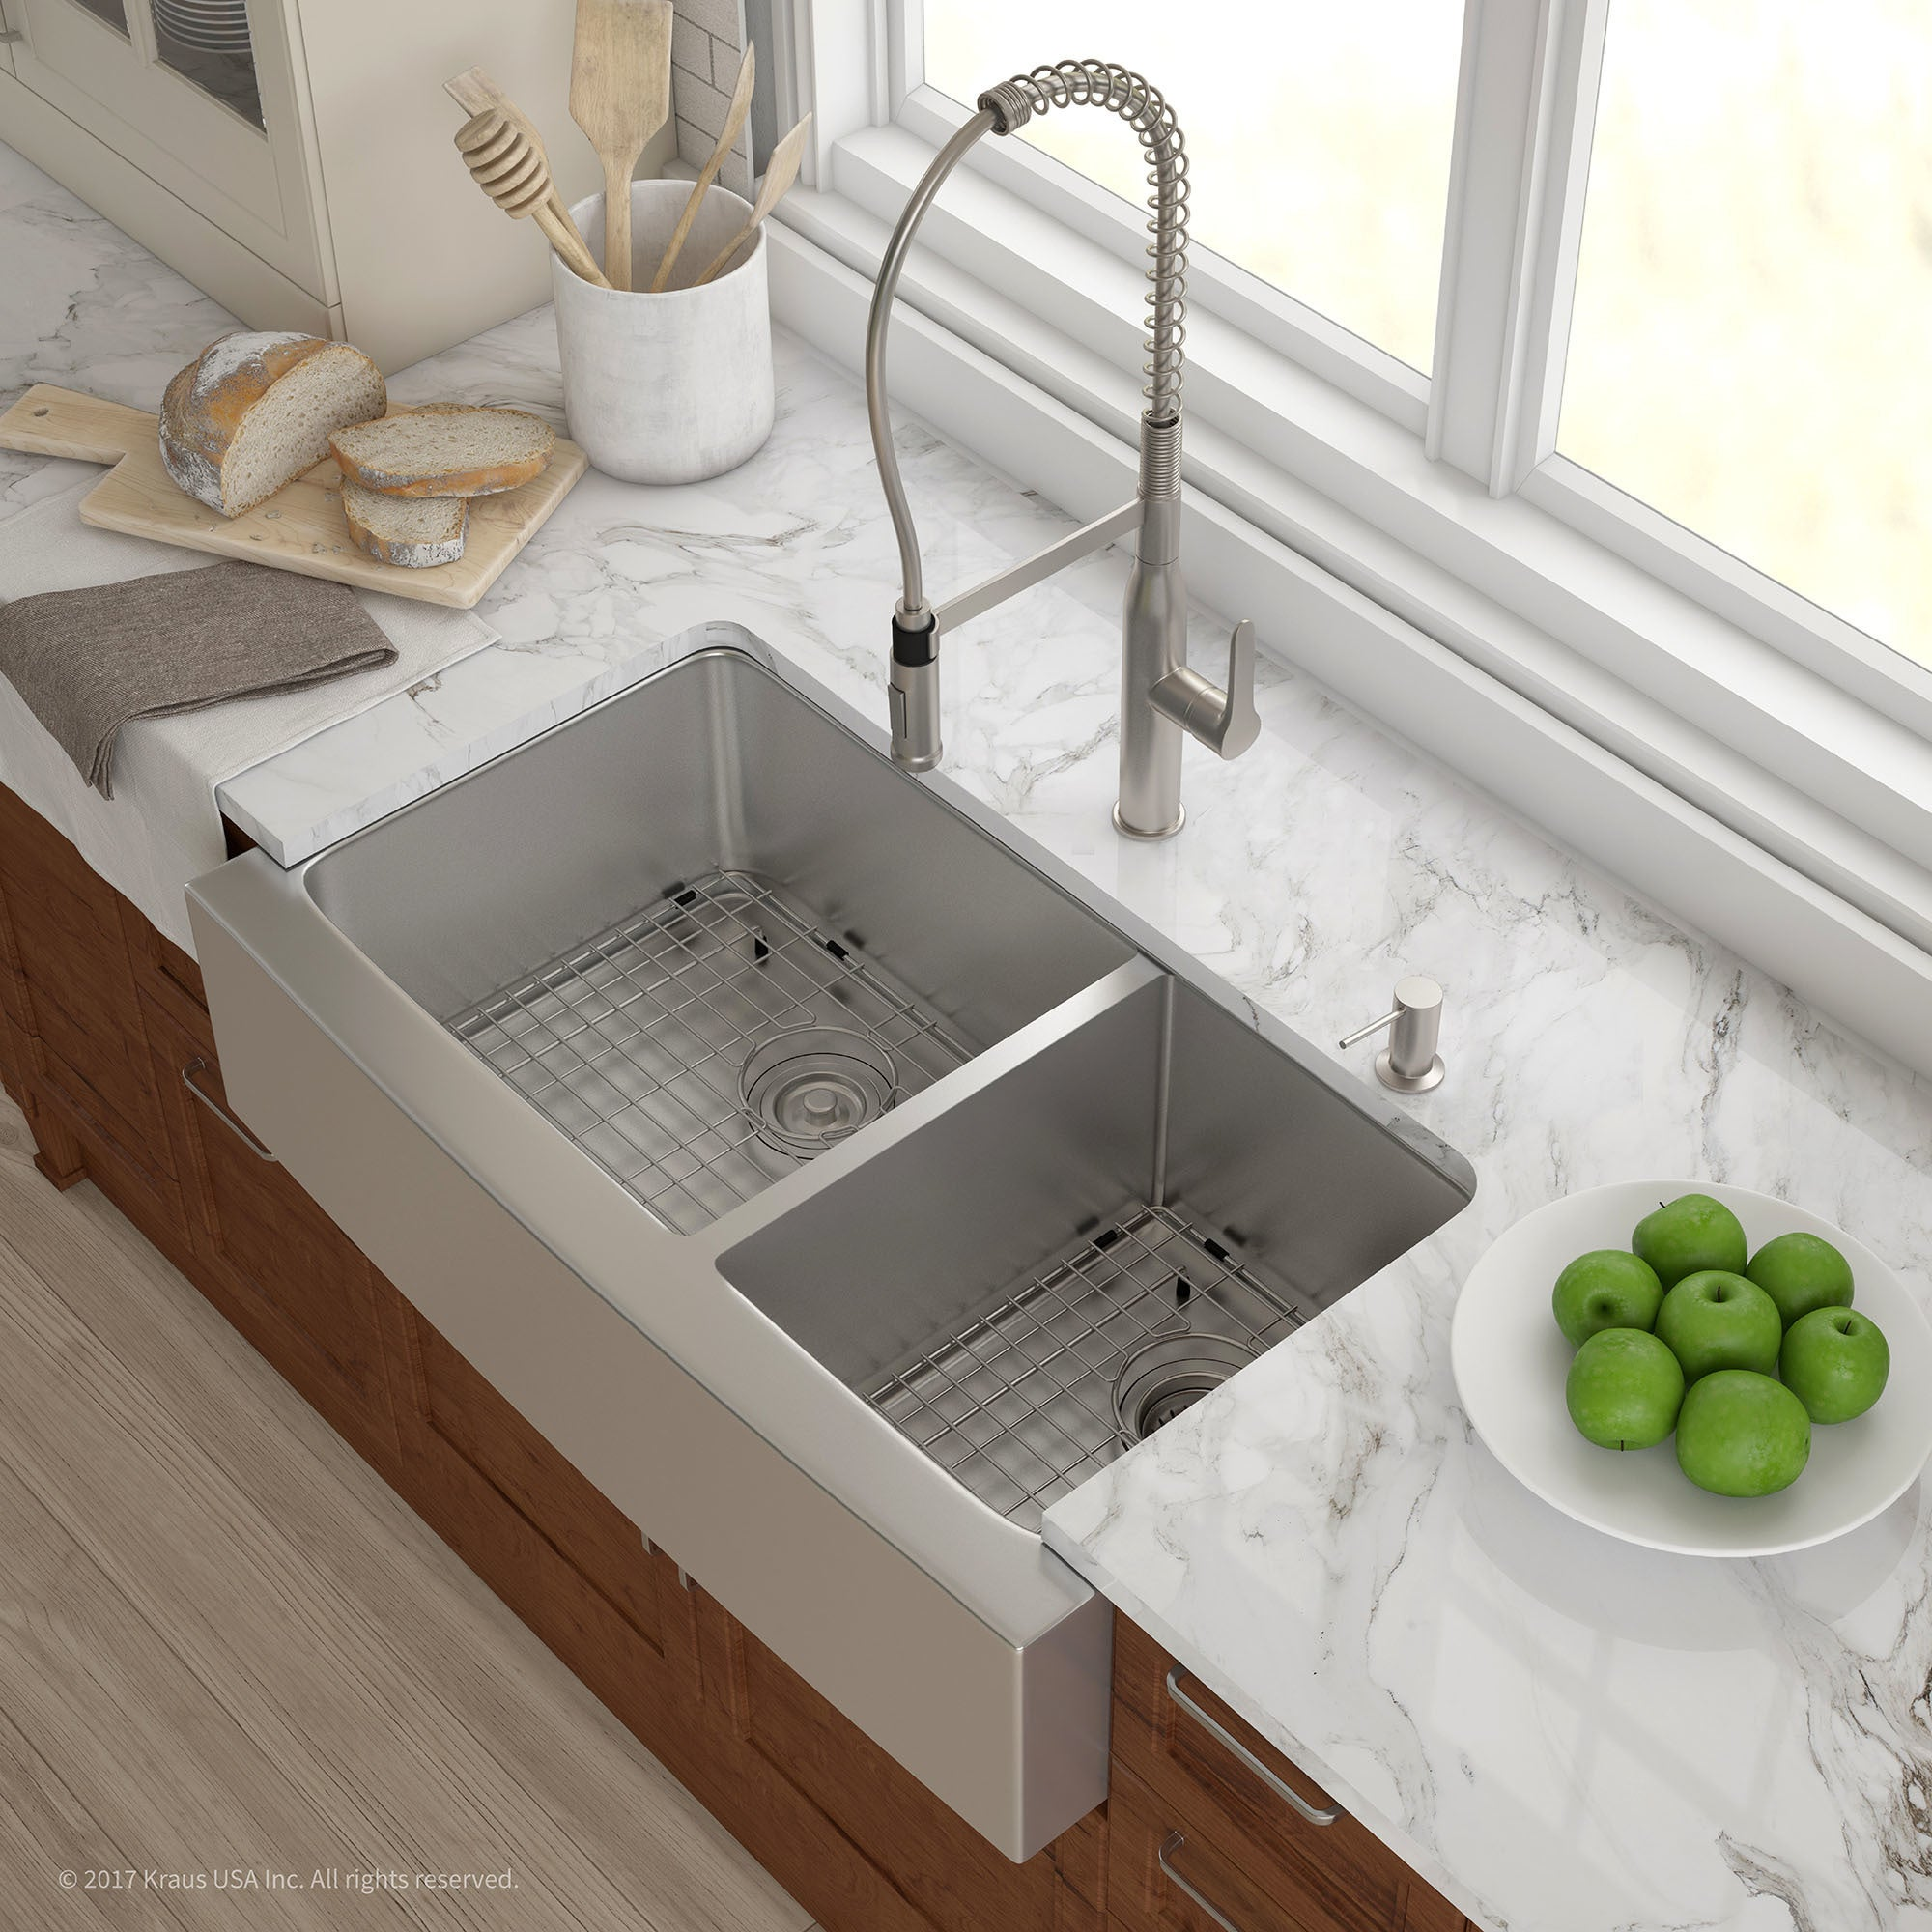 kraus 36 inch farmhouse double bowl stainless steel kitchen sink with noisedefend soundproofing   free shipping today   overstock com   12264210 kraus 36 inch farmhouse double bowl stainless steel kitchen sink      rh   overstock com